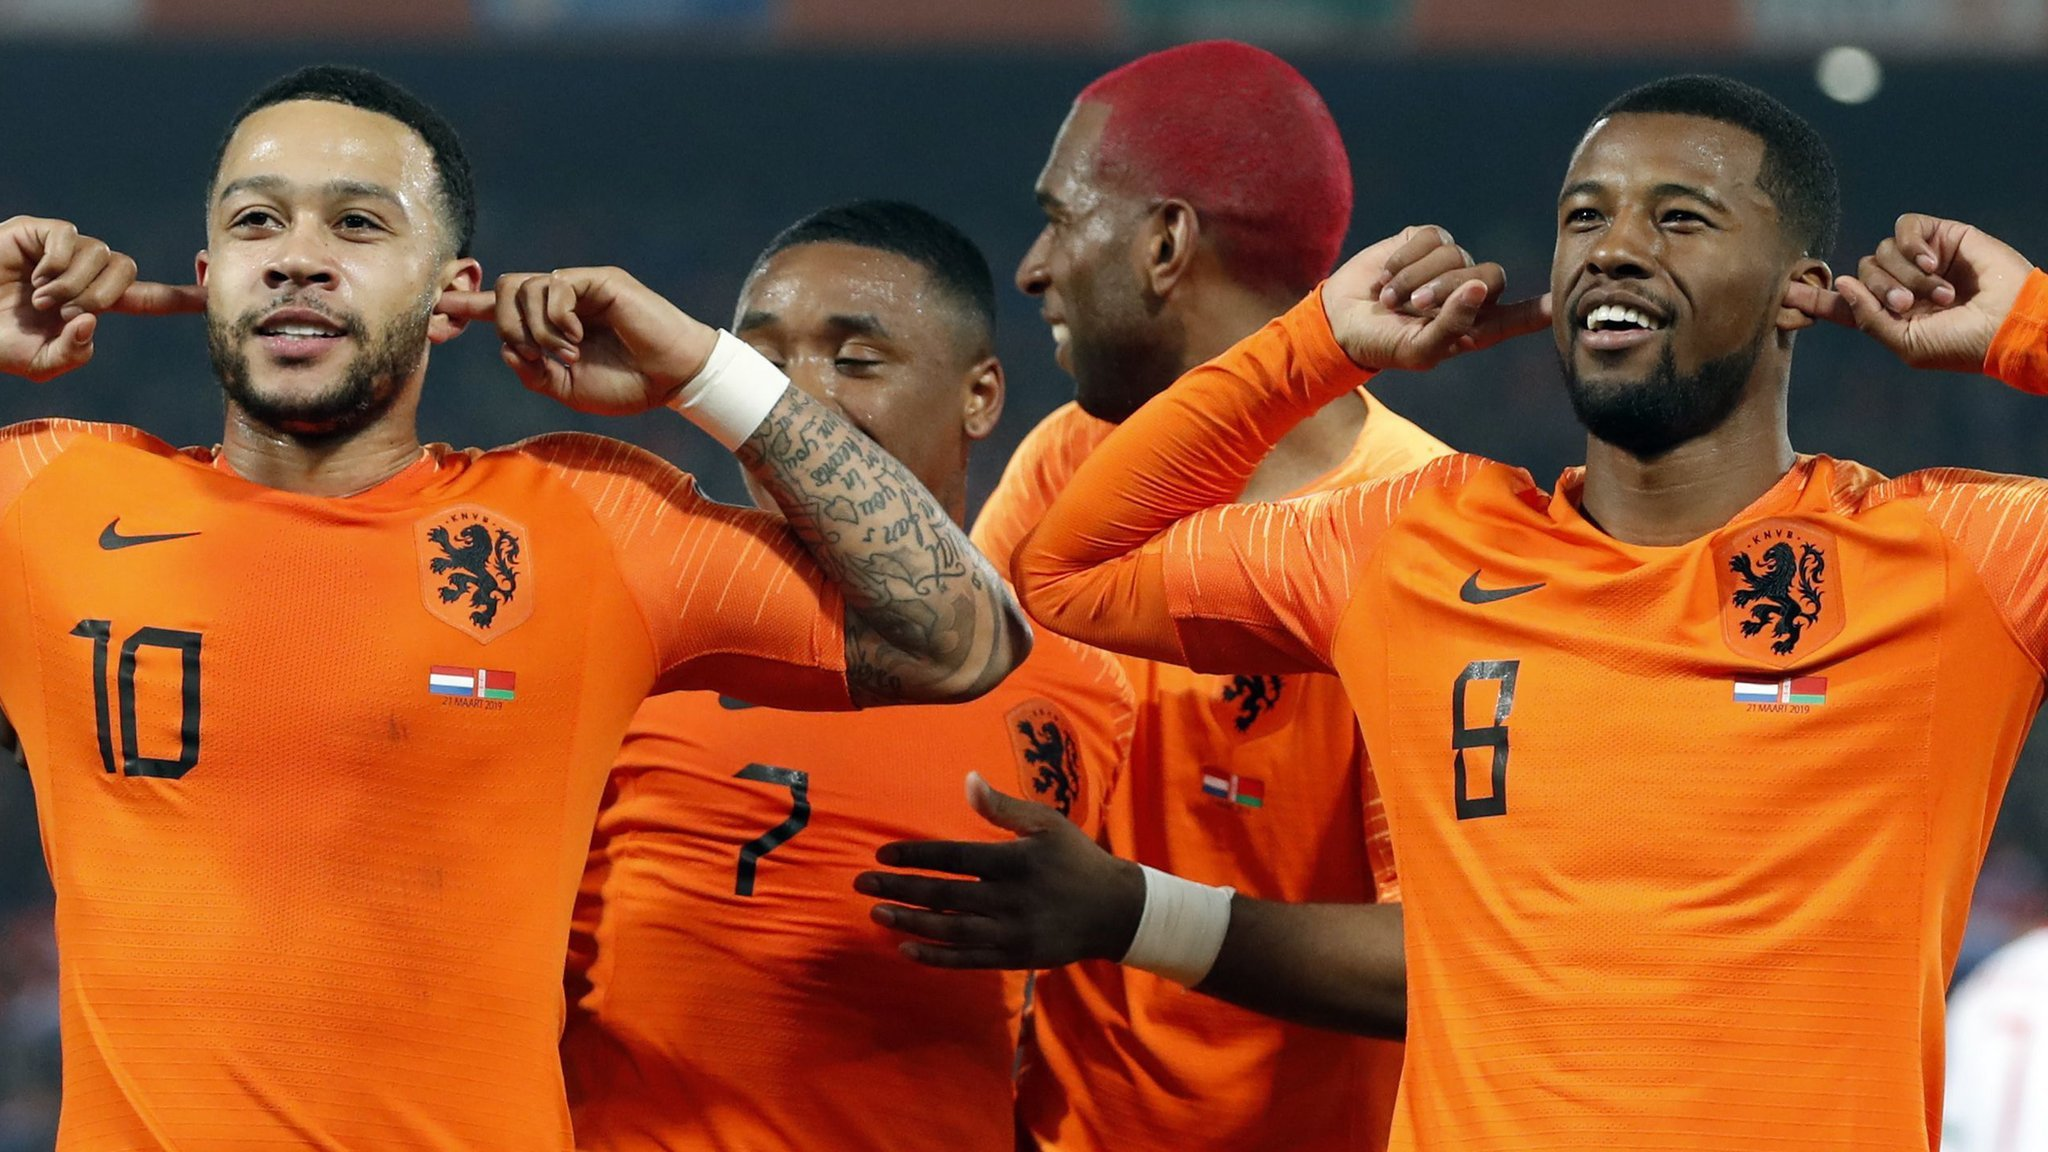 Netherlands 4-0 Belarus: Depay, Wijnaldum & Van Dijk score in big Dutch win